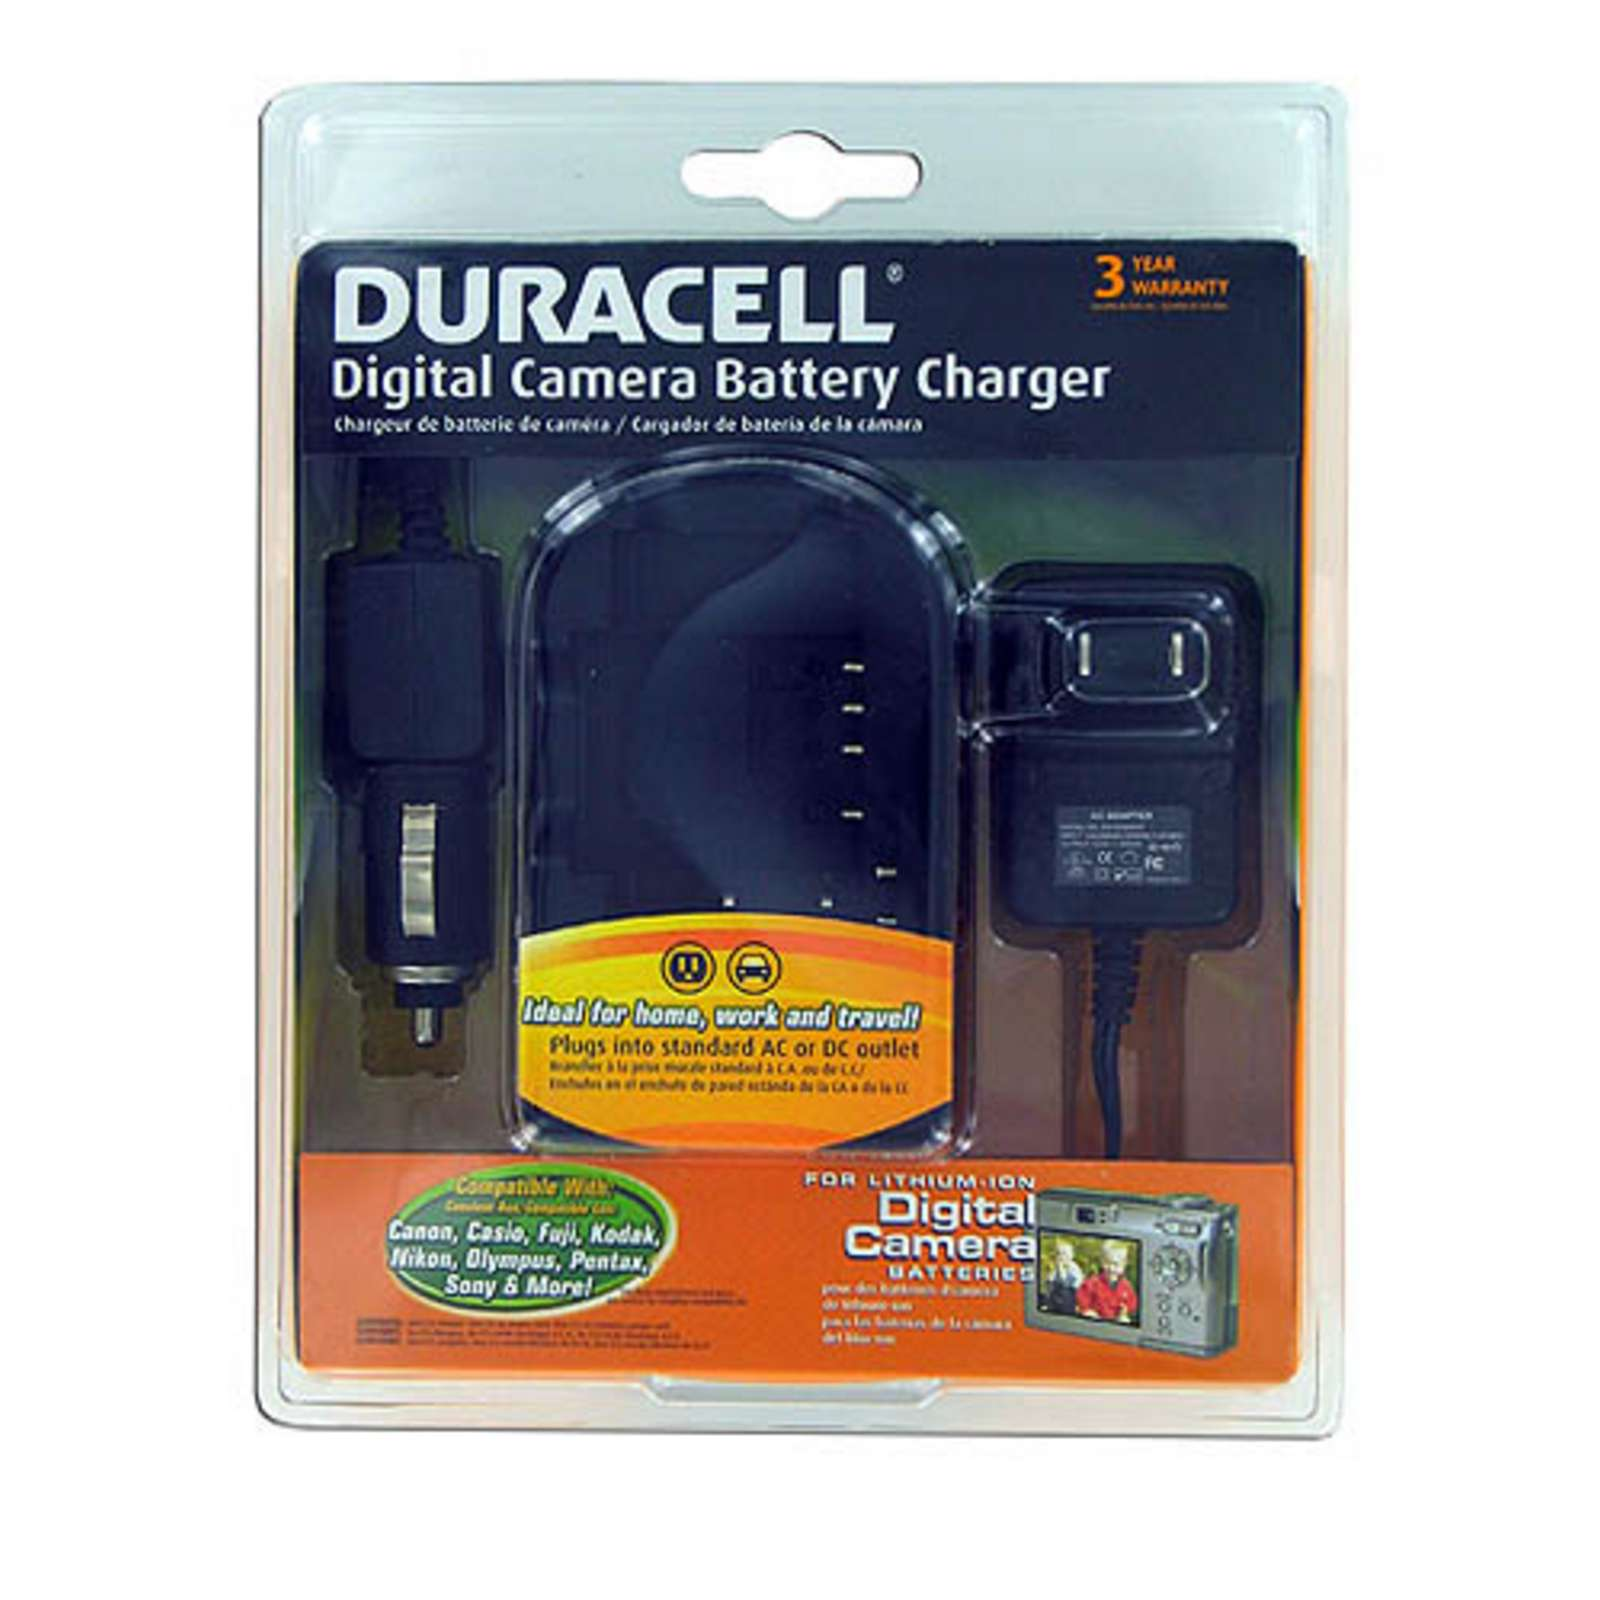 duracell drchdigt digital camera battery charger for canon. Black Bedroom Furniture Sets. Home Design Ideas